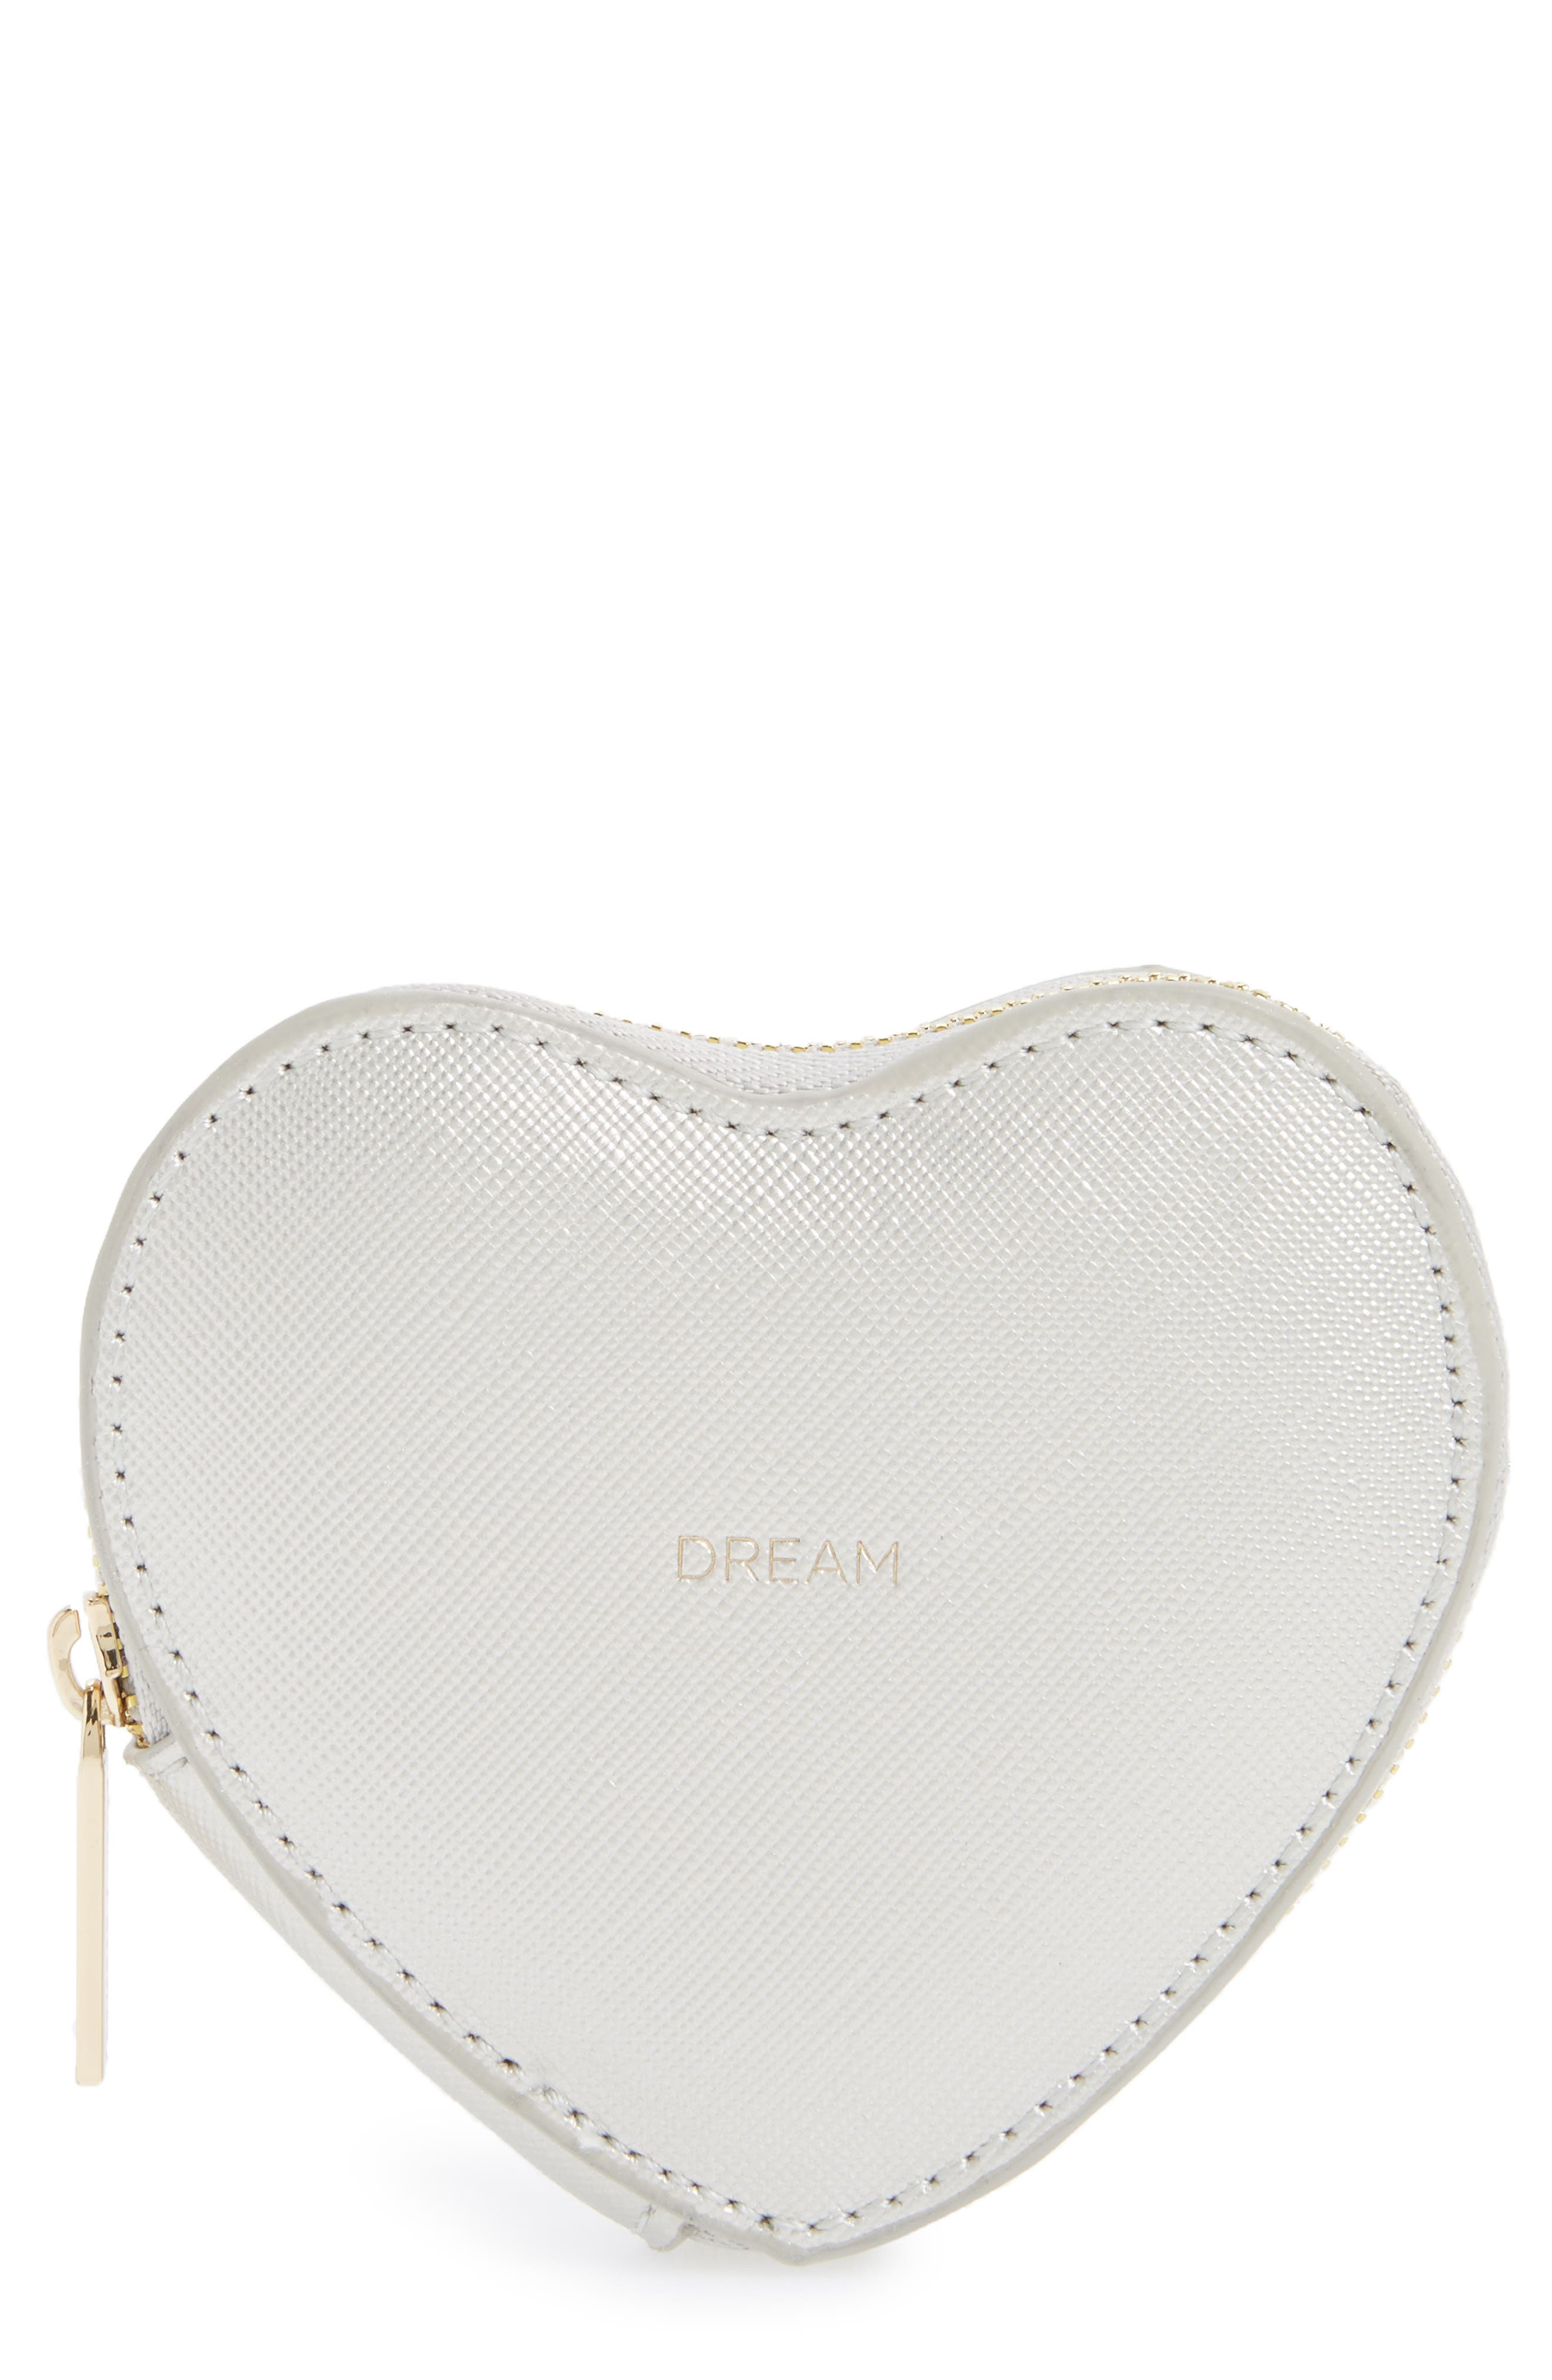 Heart Dream Faux Leather Coin Purse,                             Main thumbnail 1, color,